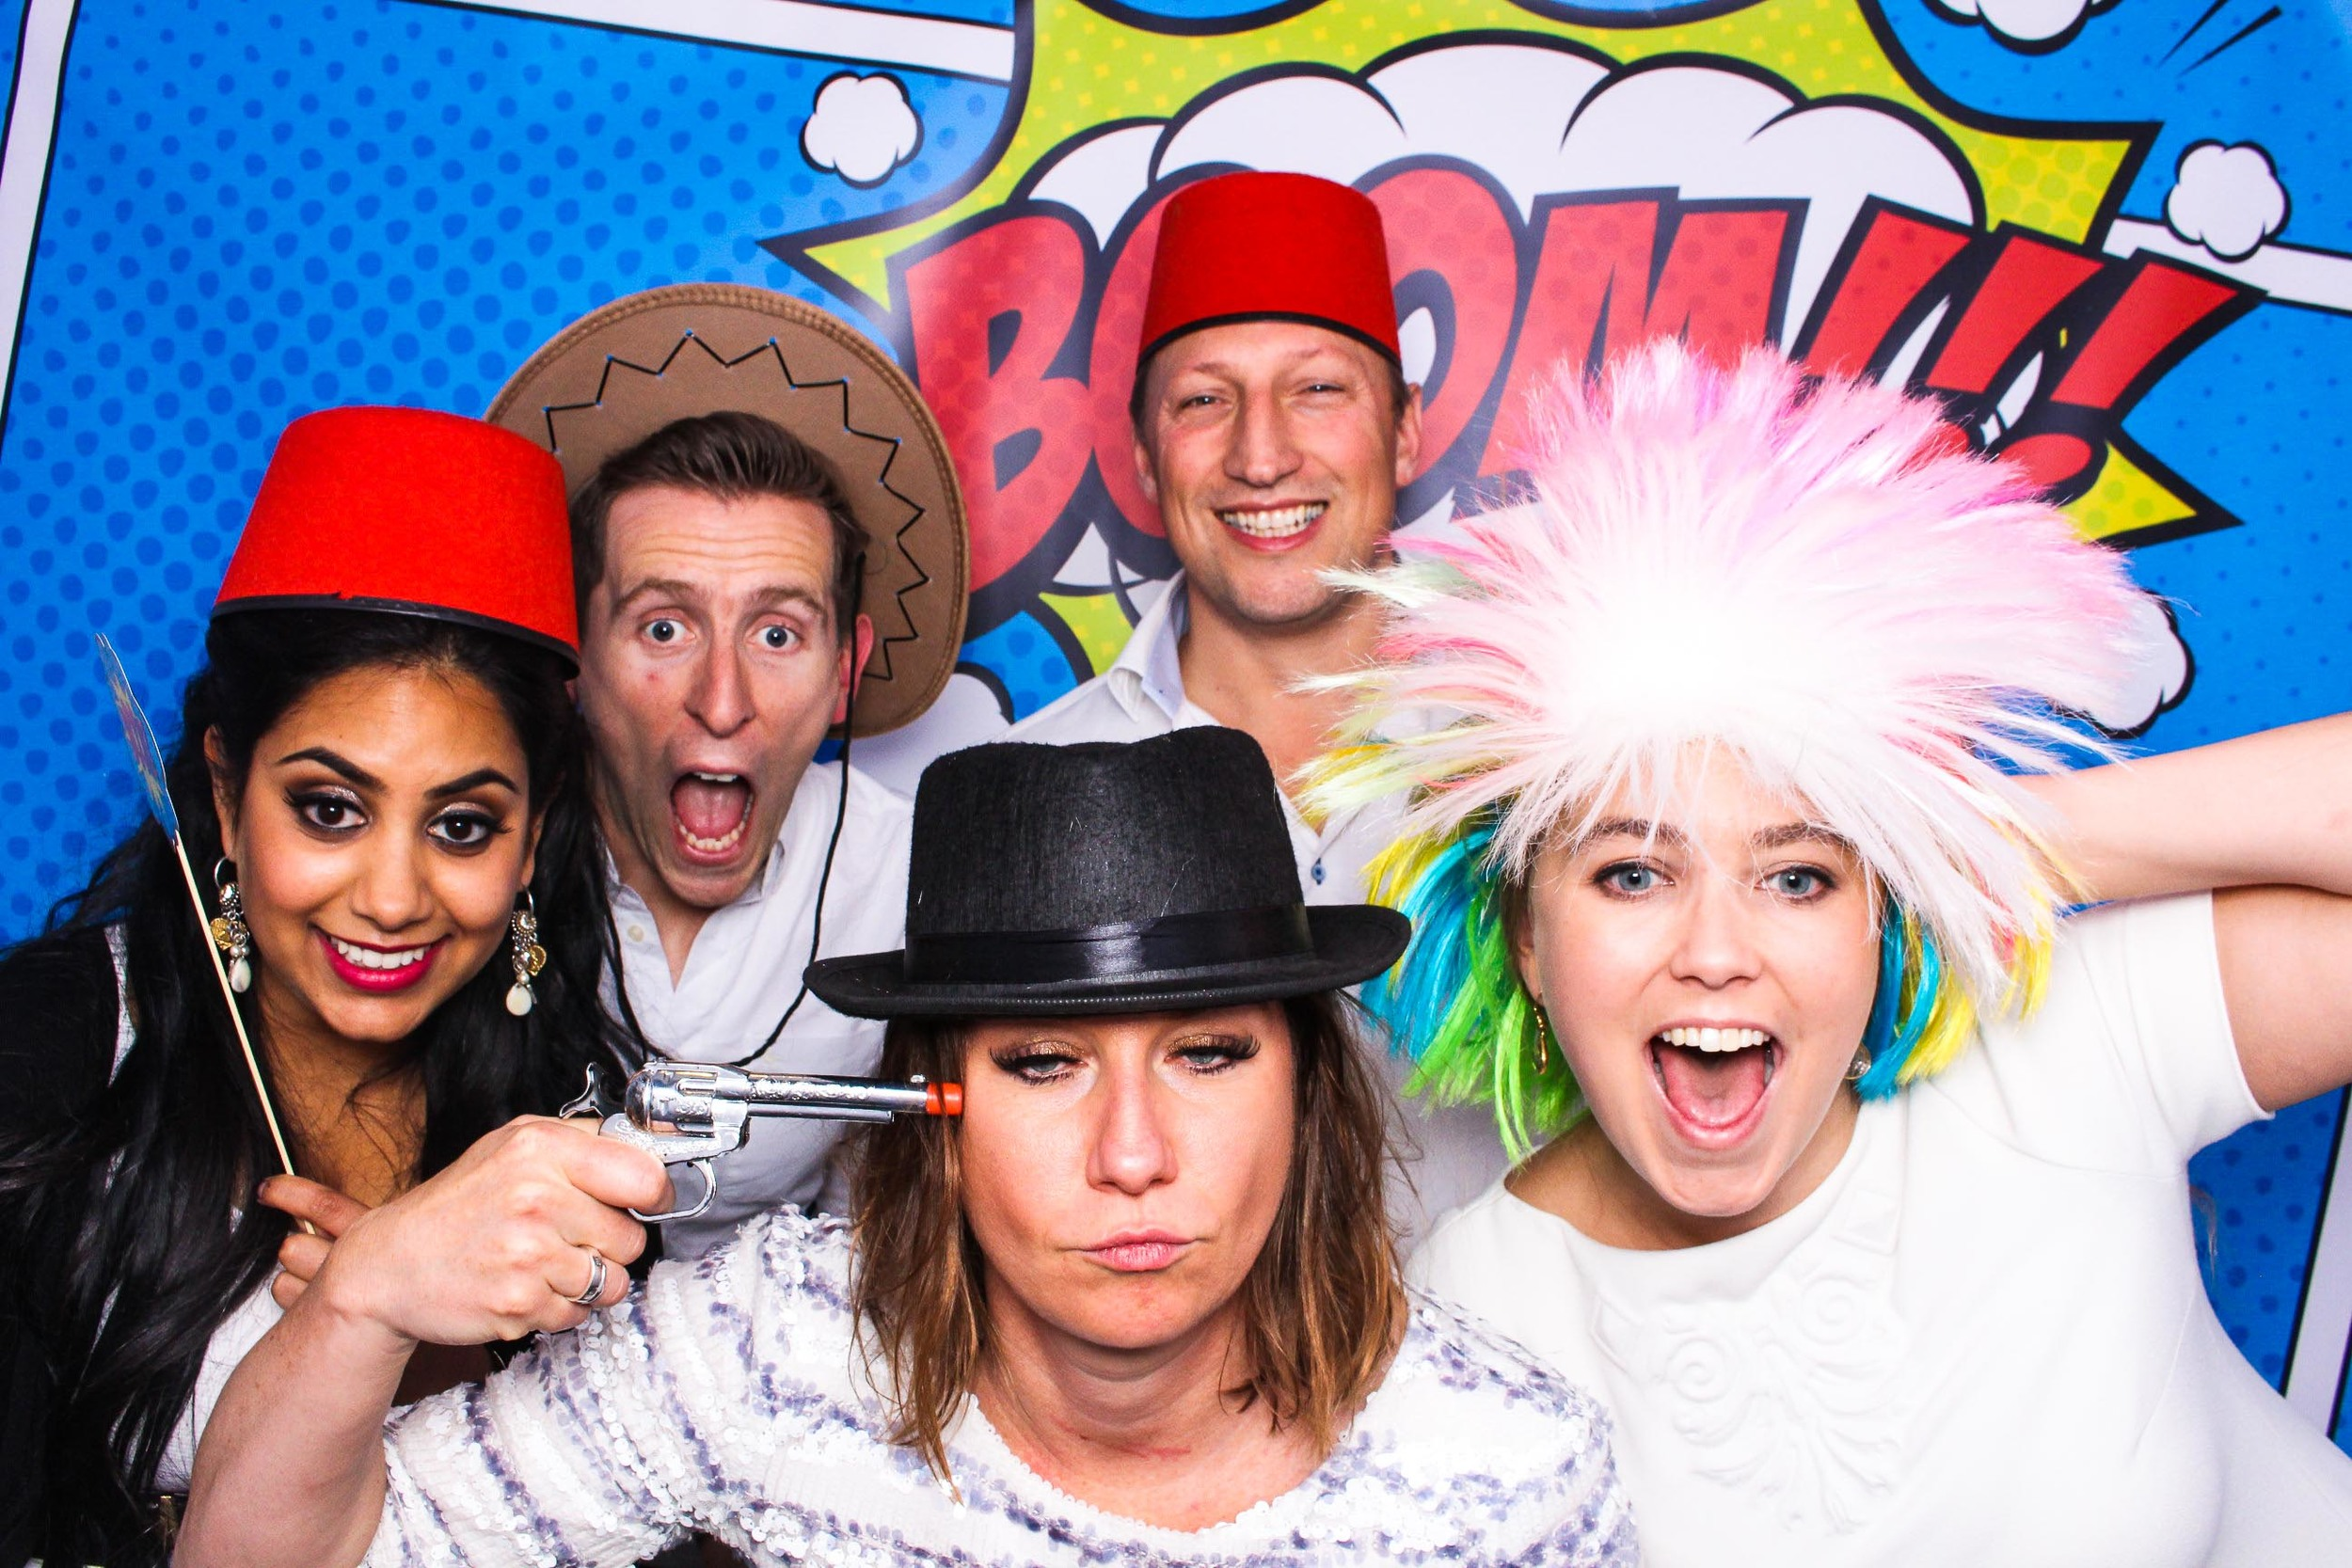 Fotoauto Photo Booth Hire - Shop Direct-279.jpg